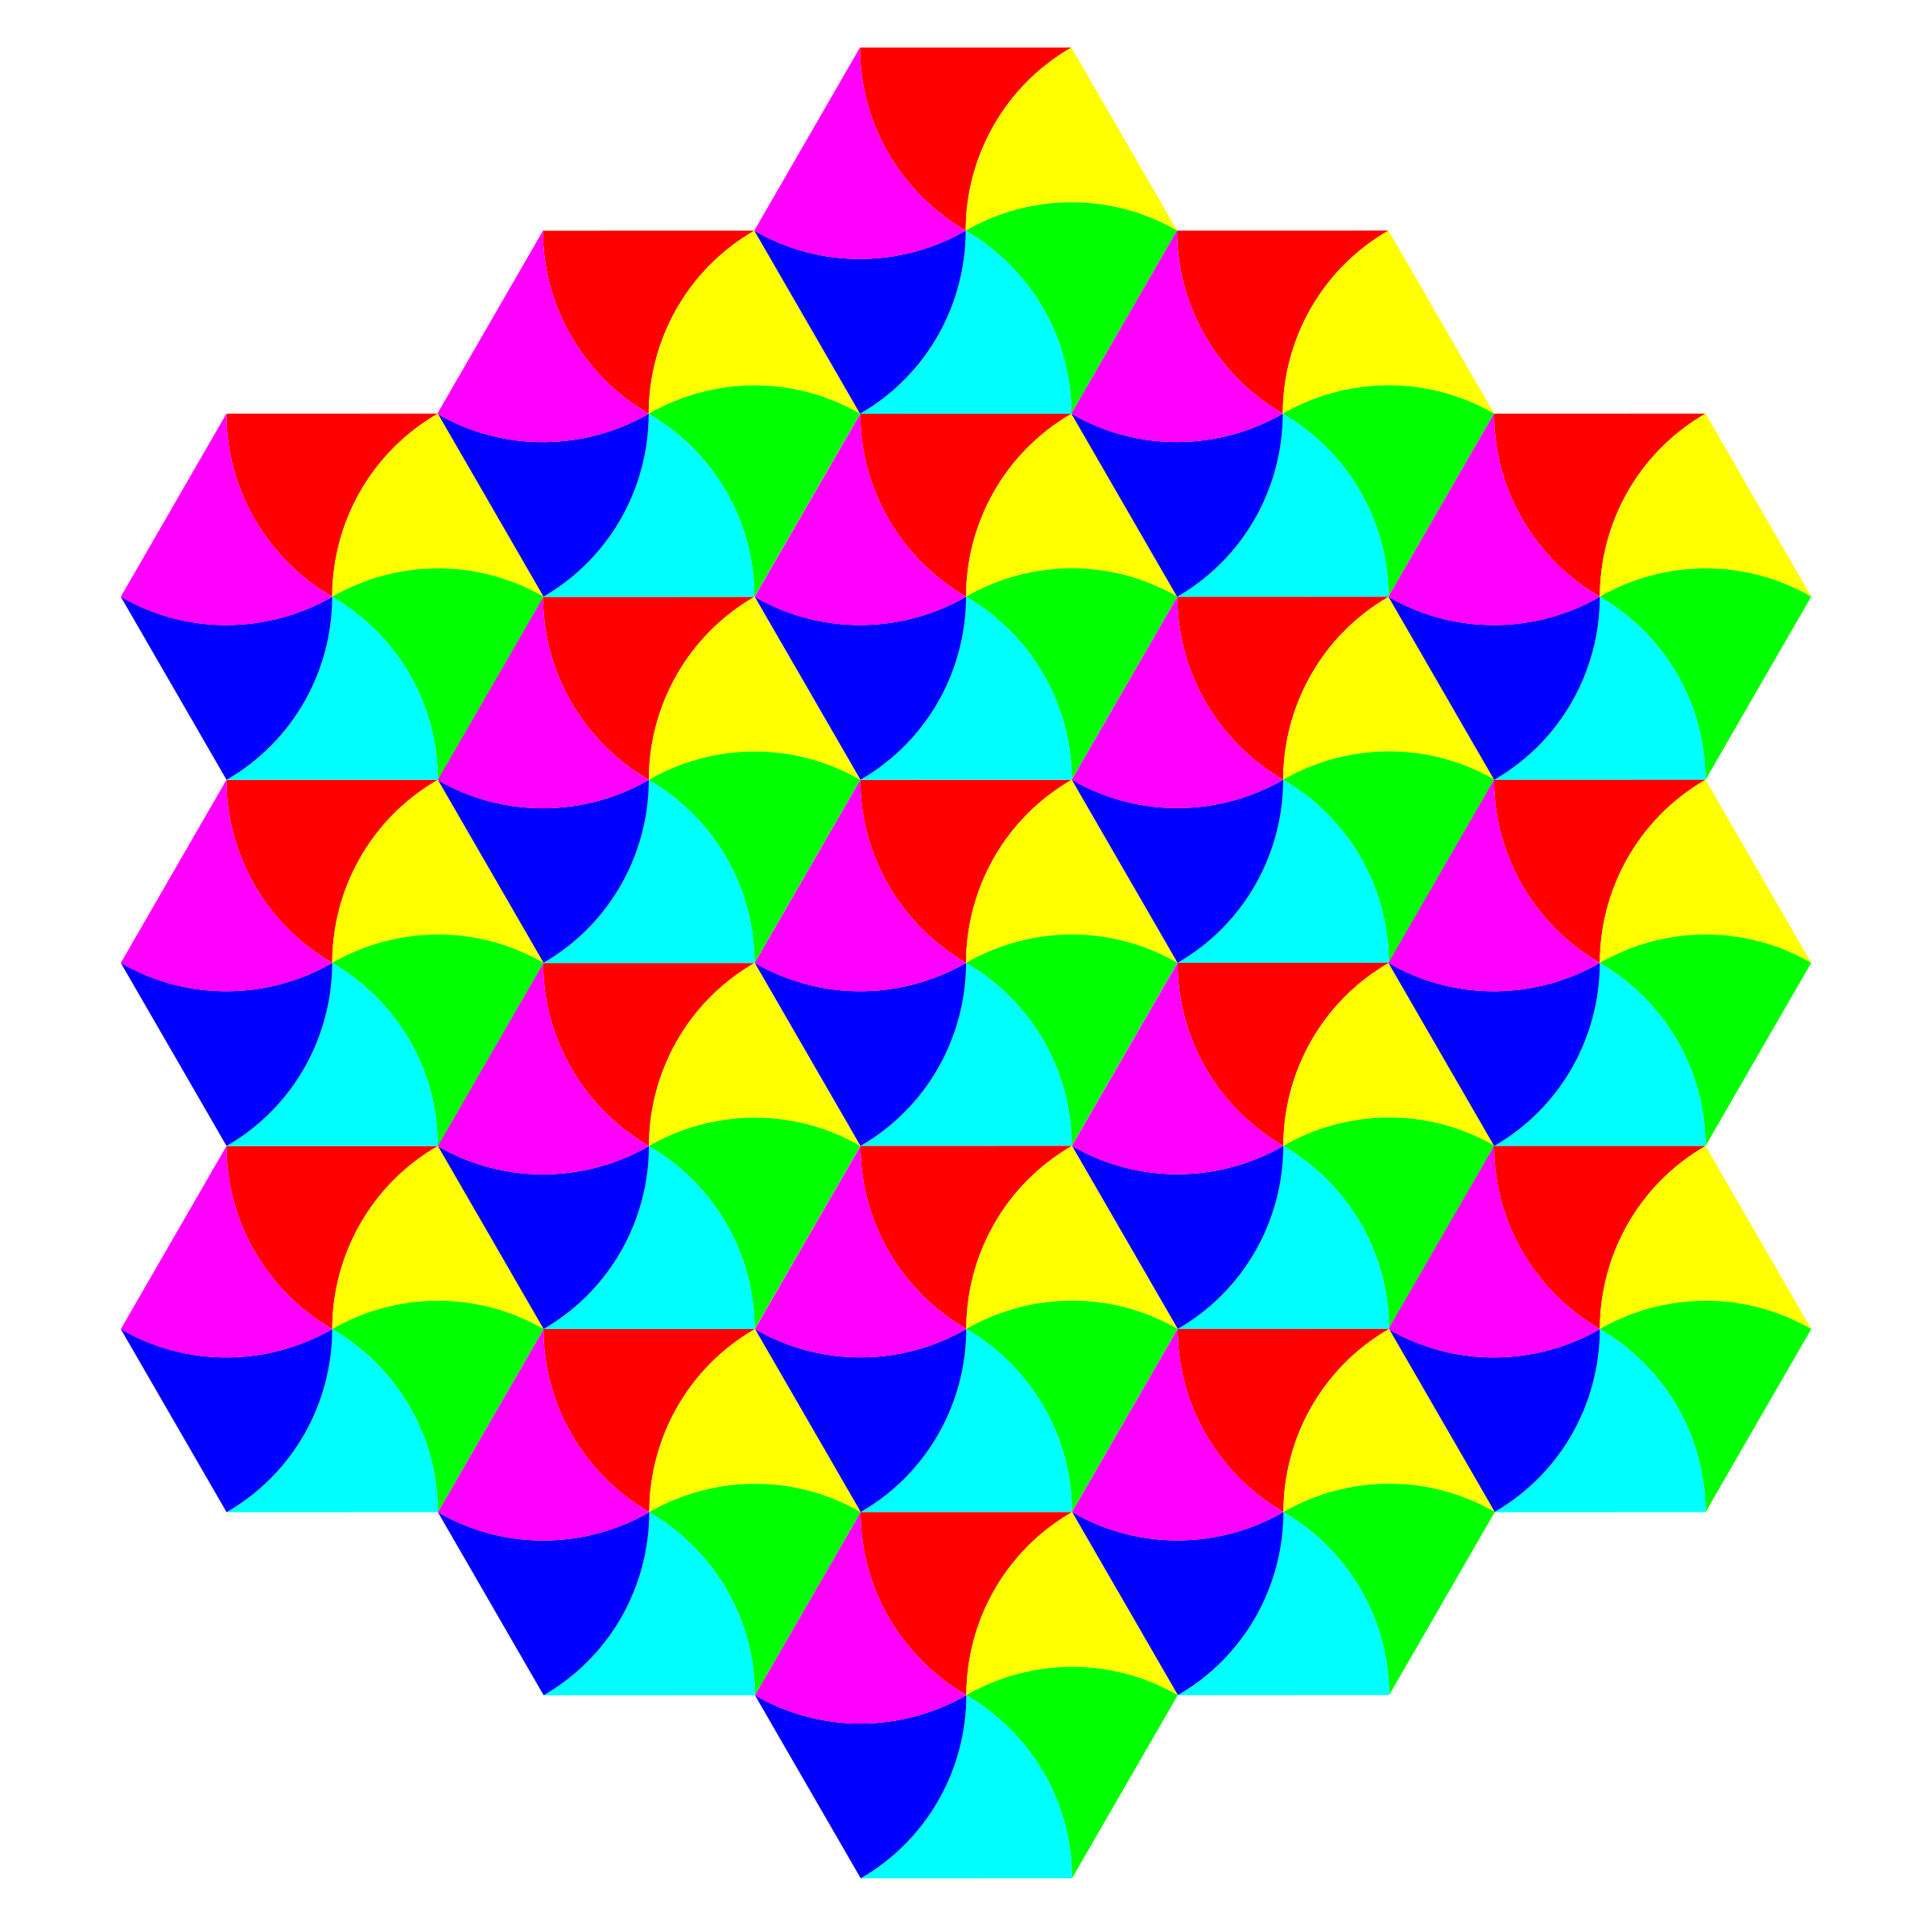 swirly hexagon tessellation by 10binary